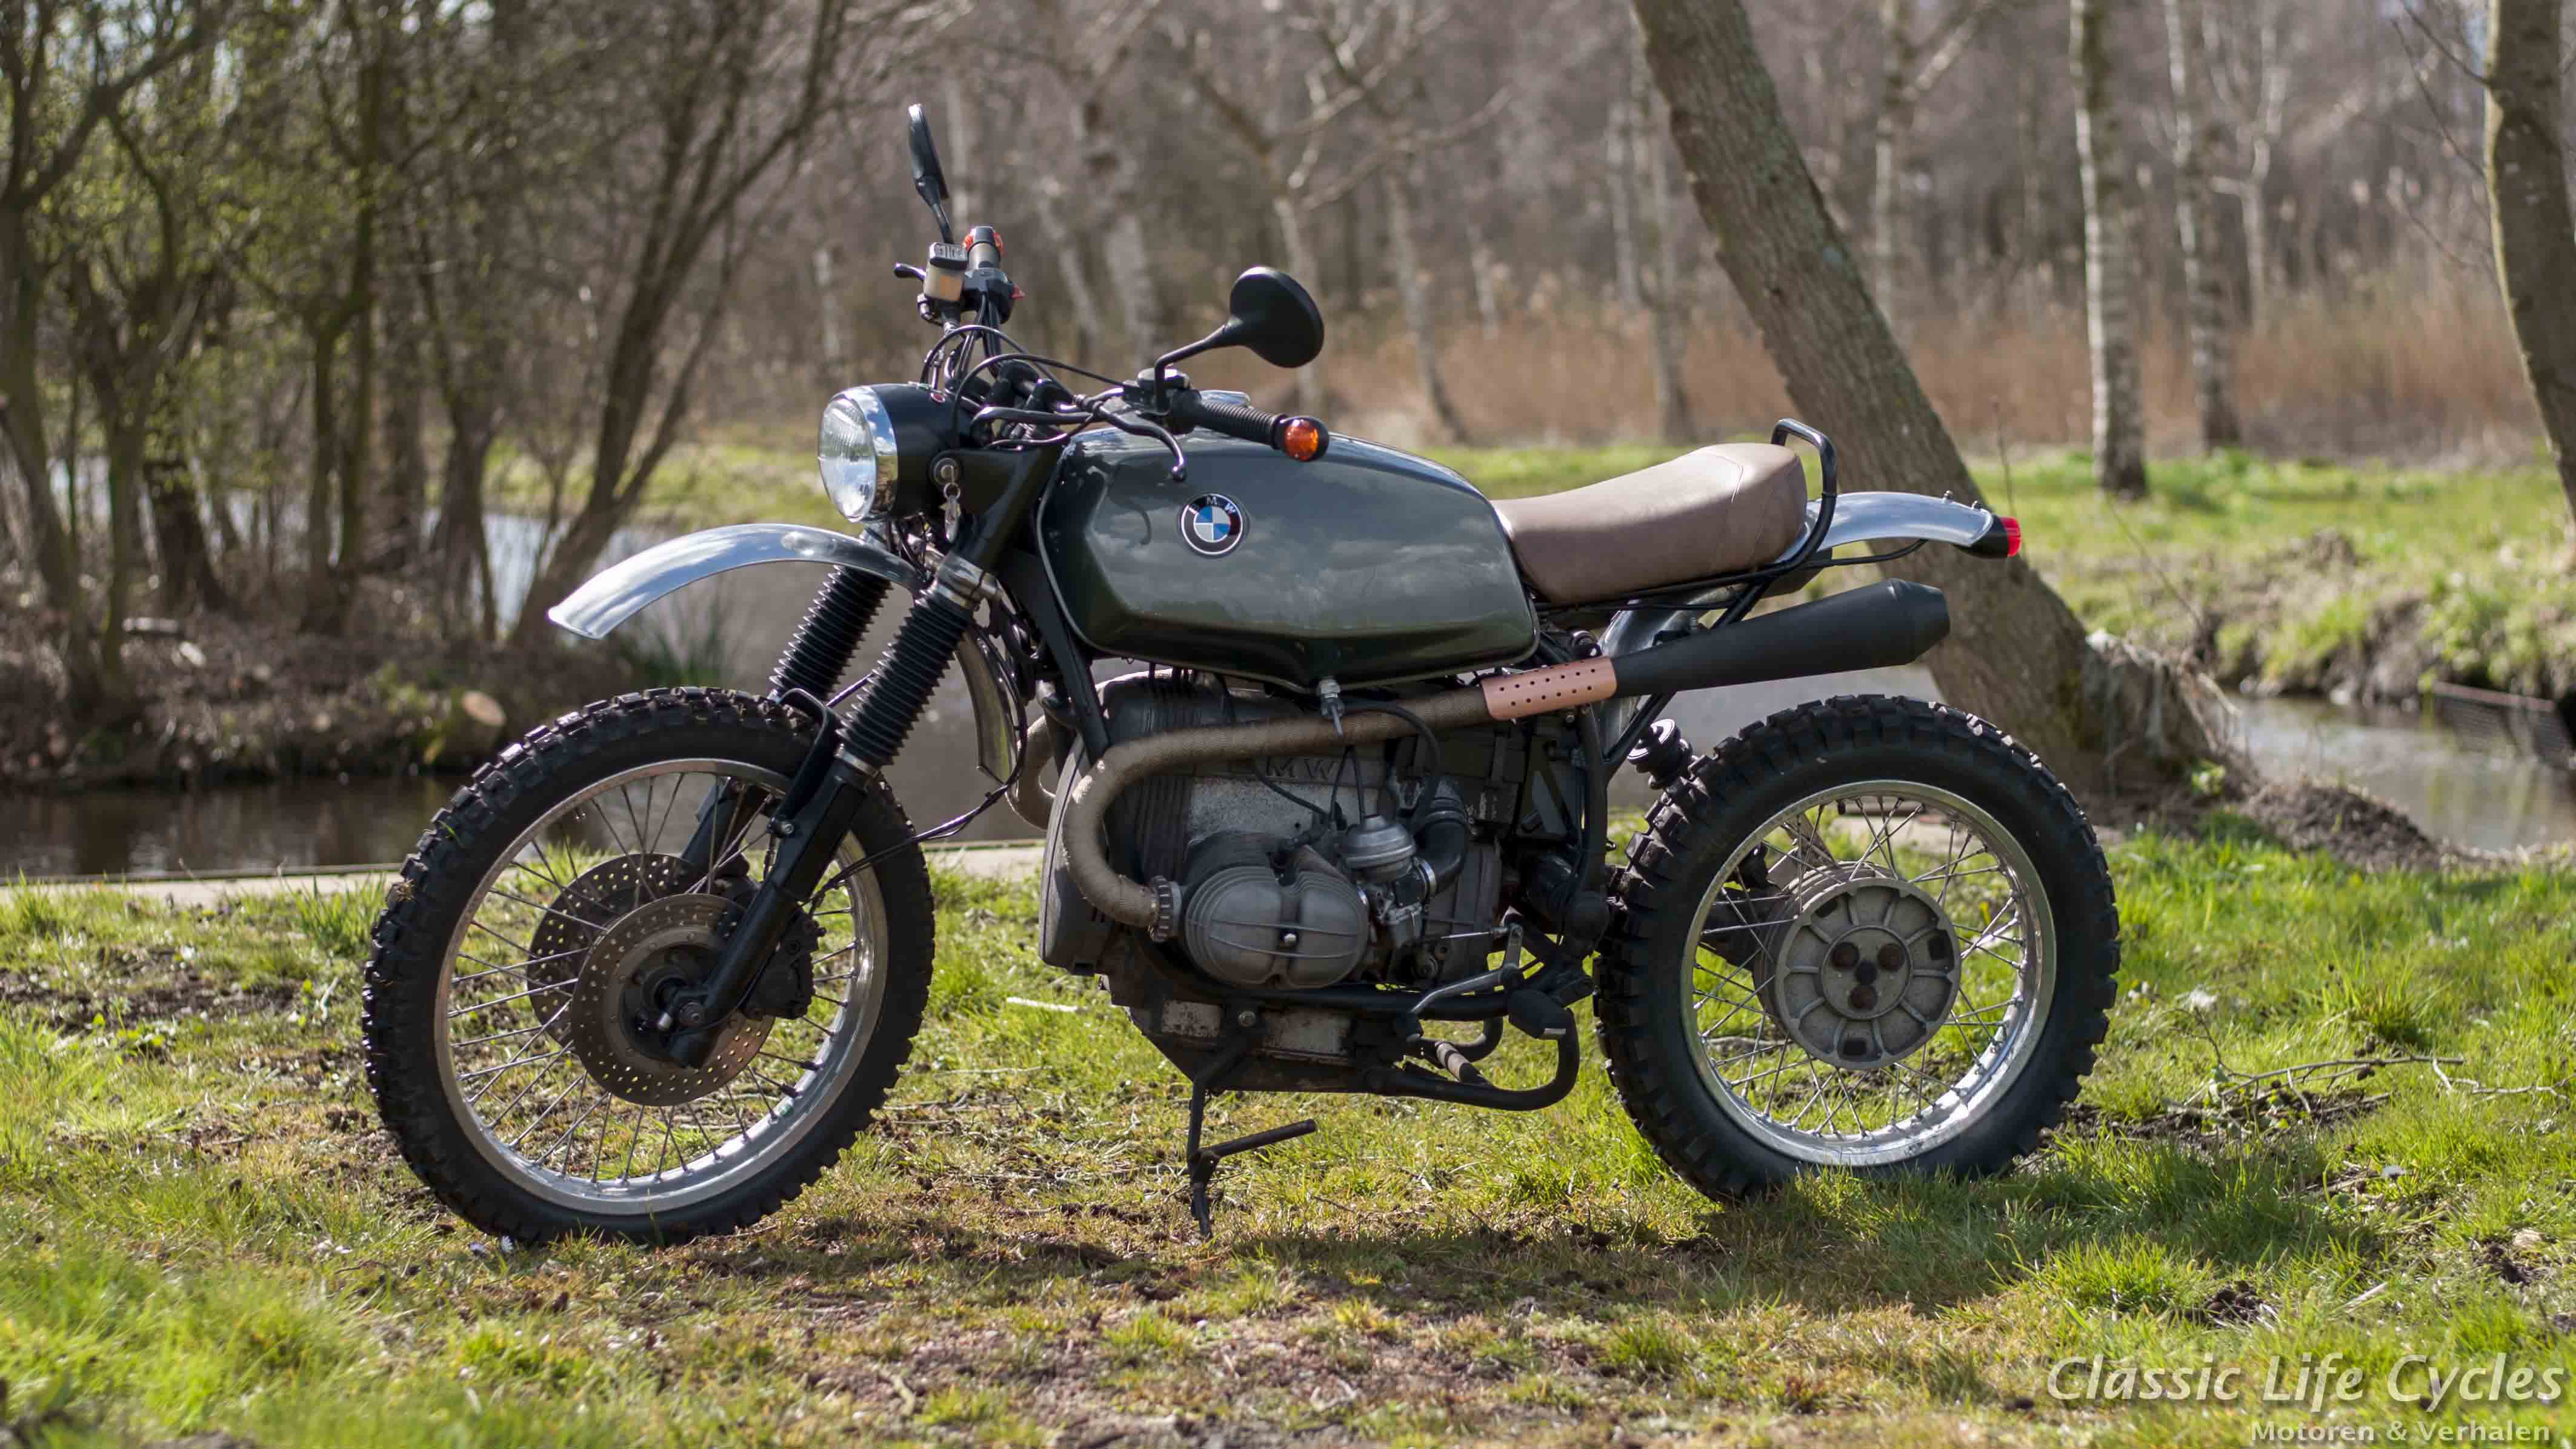 BMW R80 Scrambler – Paul's Motorcycles